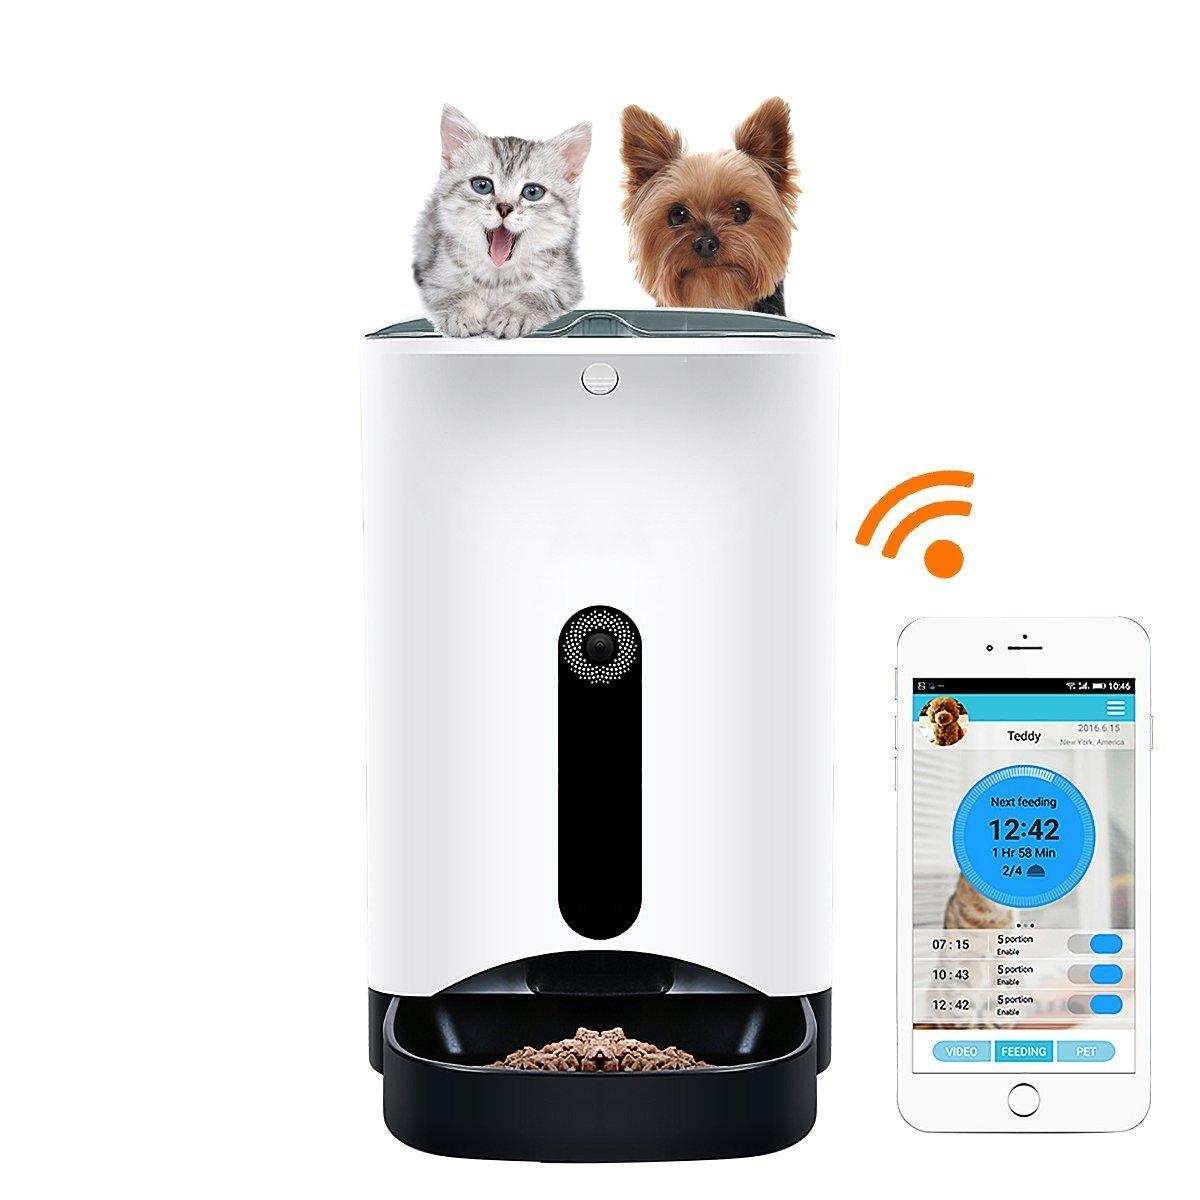 intelligent hd controlled station automatic with iphone gogs dp fi mobile pet by or com for feeder app cats control android phone wi amazon remote camera